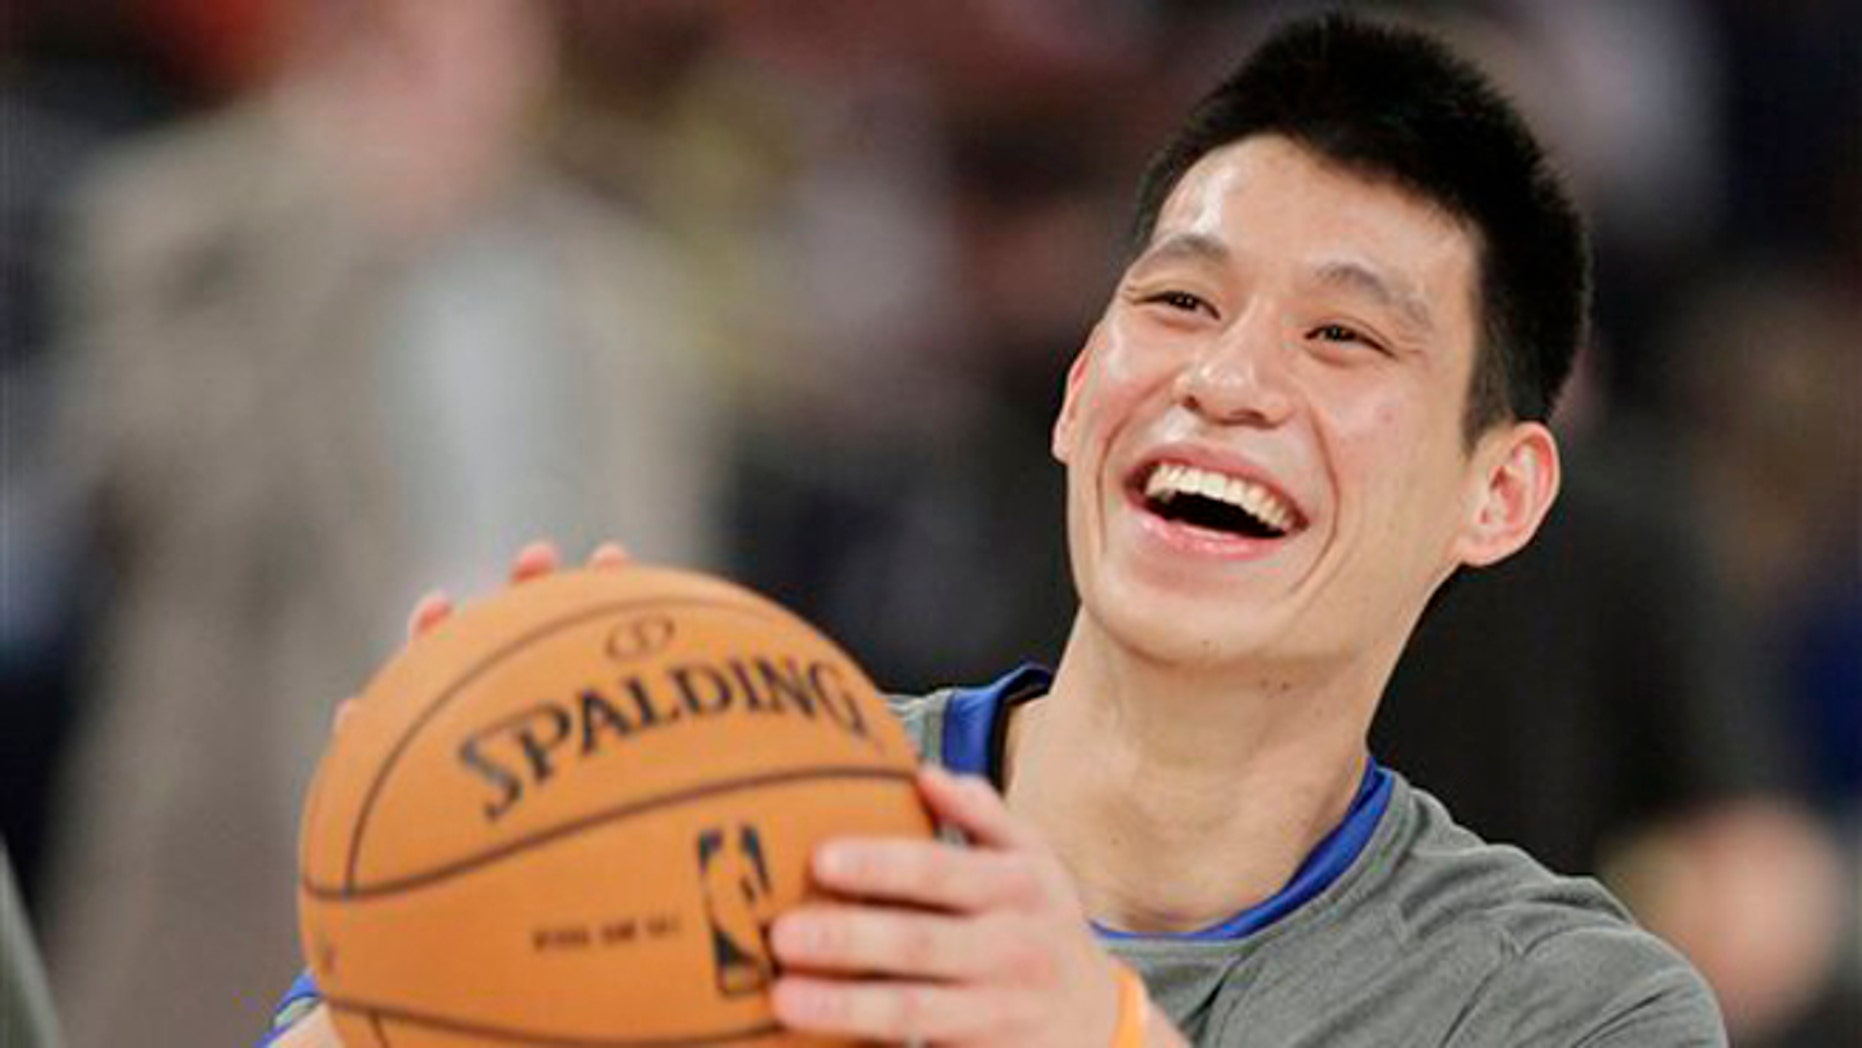 Feb. 24, 2012: This file photo shows New York Knicks' Jeremy Lin laughing during warmups before the start of the NBA All-Star Rising Stars Challenge basketball game in Orlando, Fla.